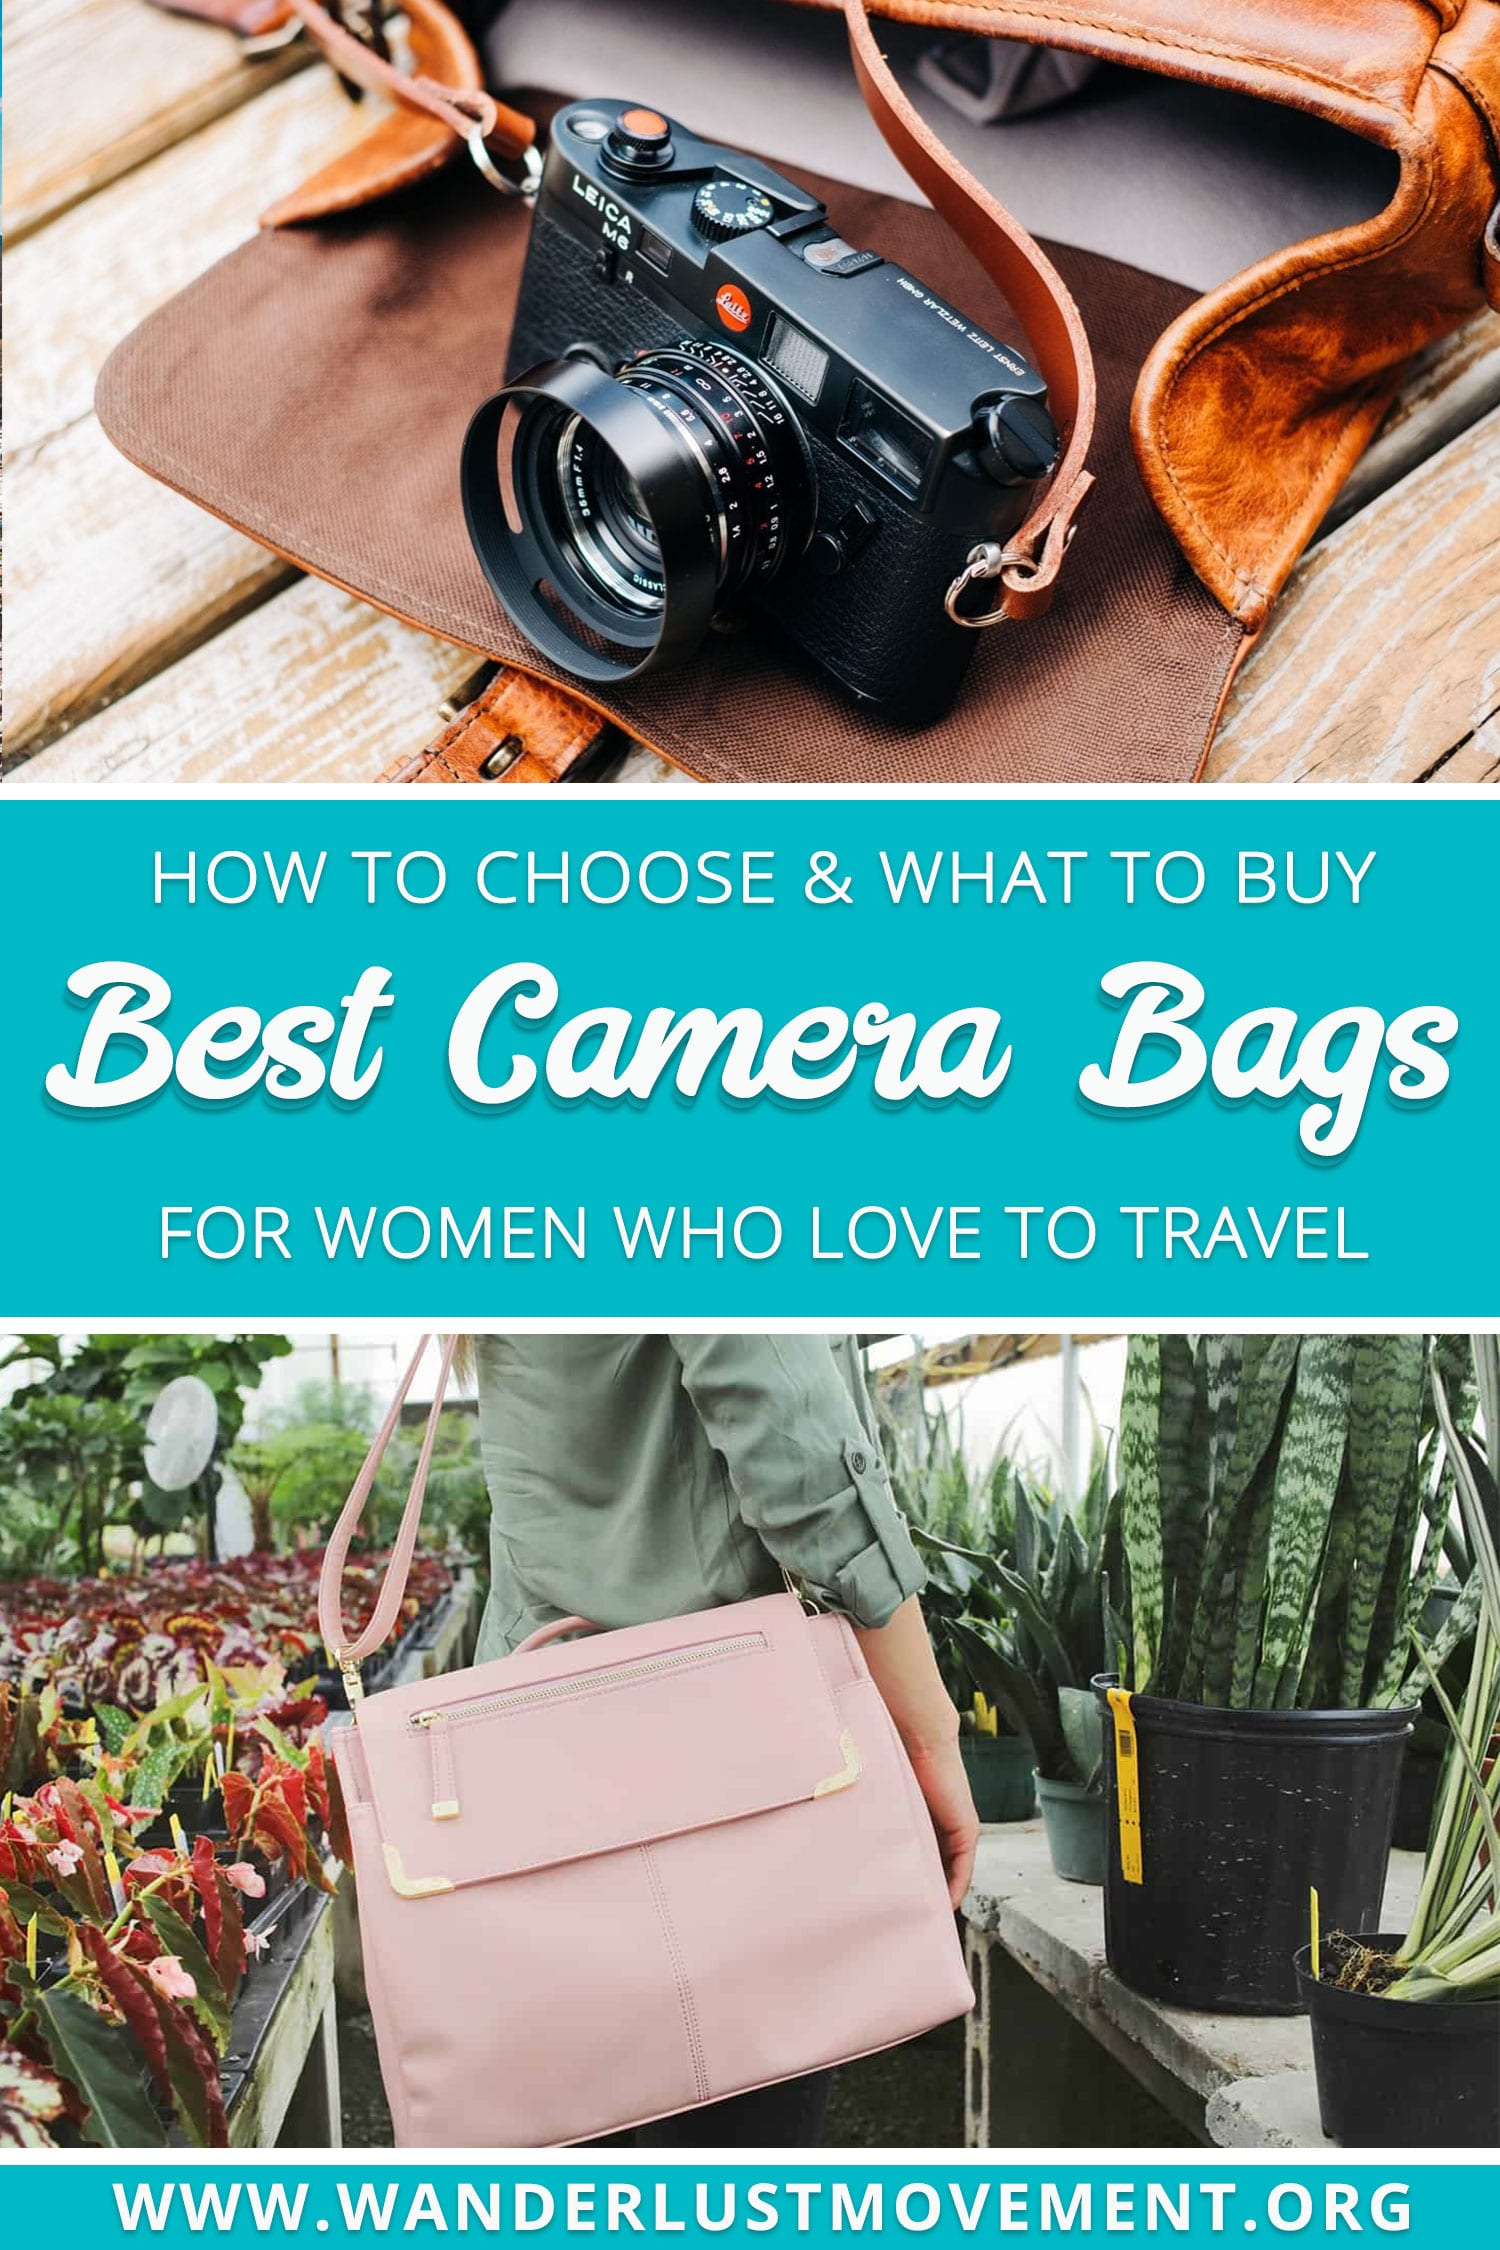 Life\'s too short for ugly camera bags. I\'ve scoured the web to find the best camera bags for women that are stylish, cute and also 100% cruelty-free. | 10 Best Vegan Camera Bags for Women | #camerabagsforwomen #camerabags #designerbags #fashion #travel